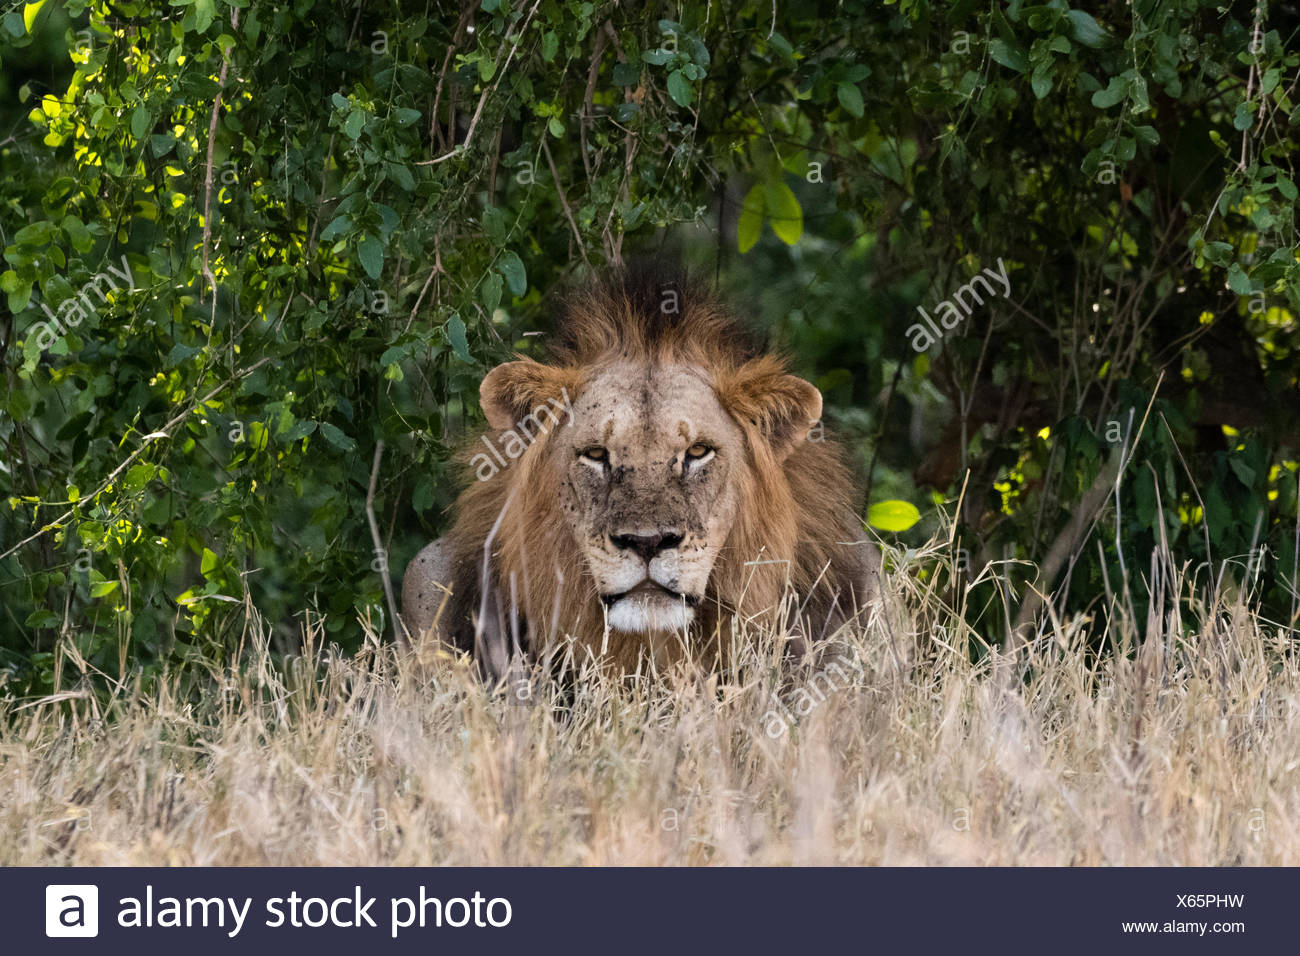 A fully grown adult lion, Panthera leo, looking into the camera. - Stock Image